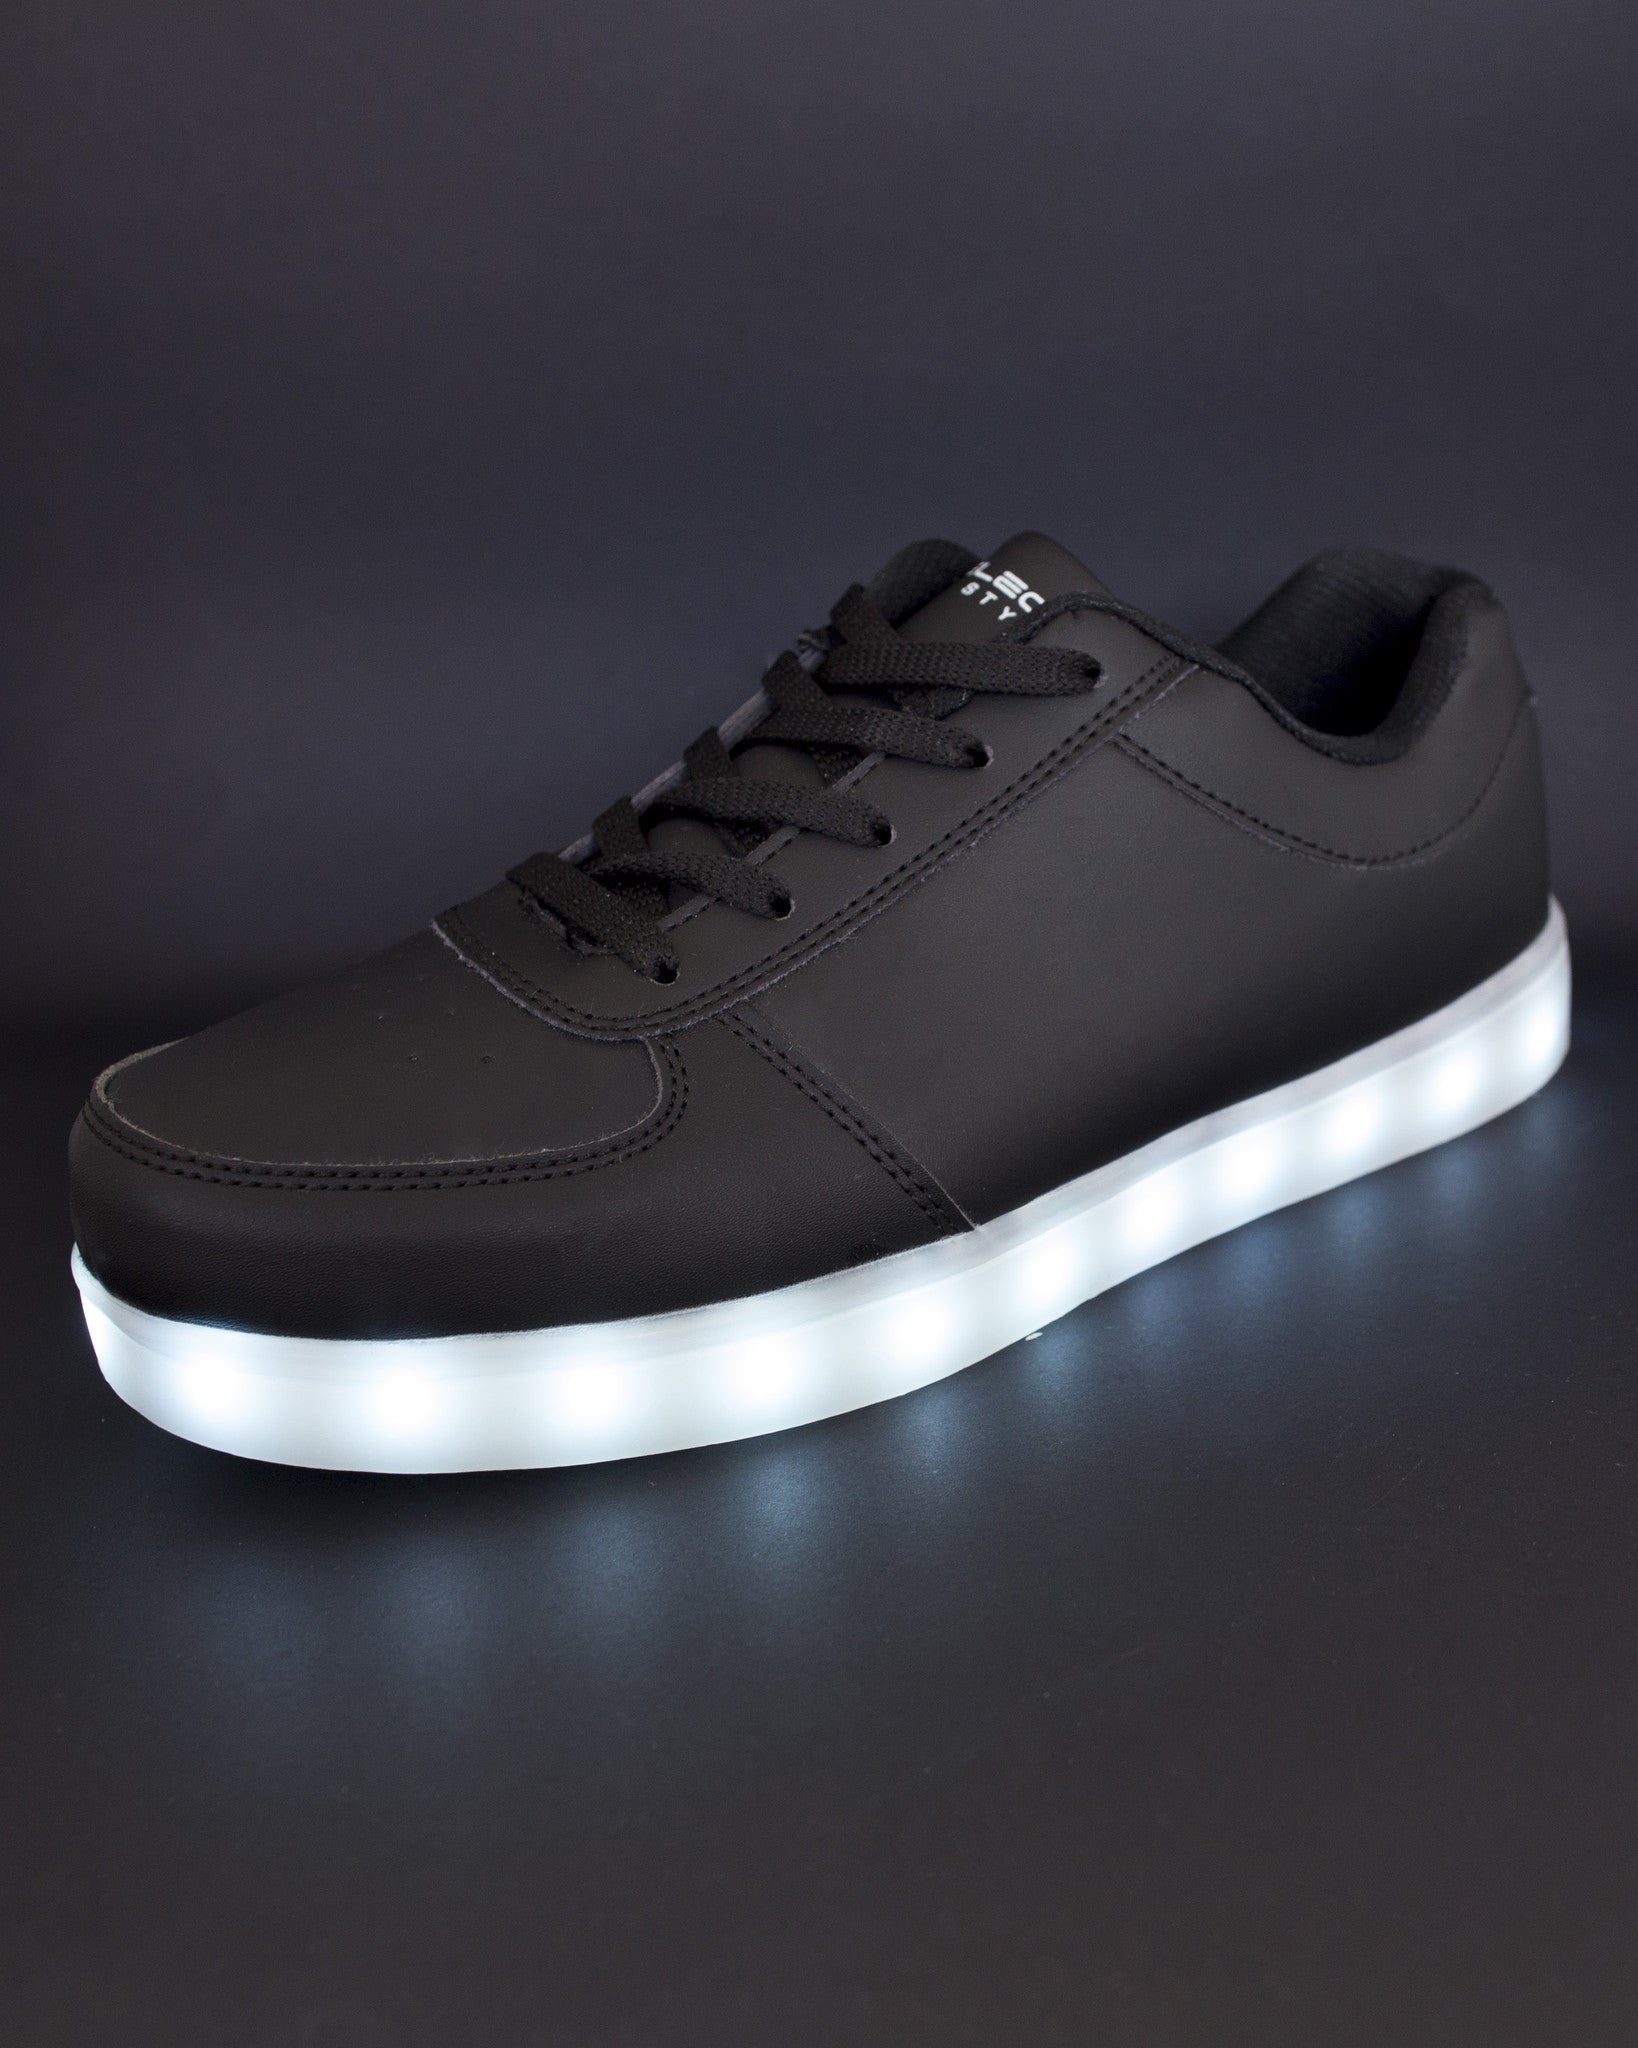 Light Up Shoes - All Black - Electric Styles | World's Number 1 Light Up Shoe Store - {product_type}} -  - 11